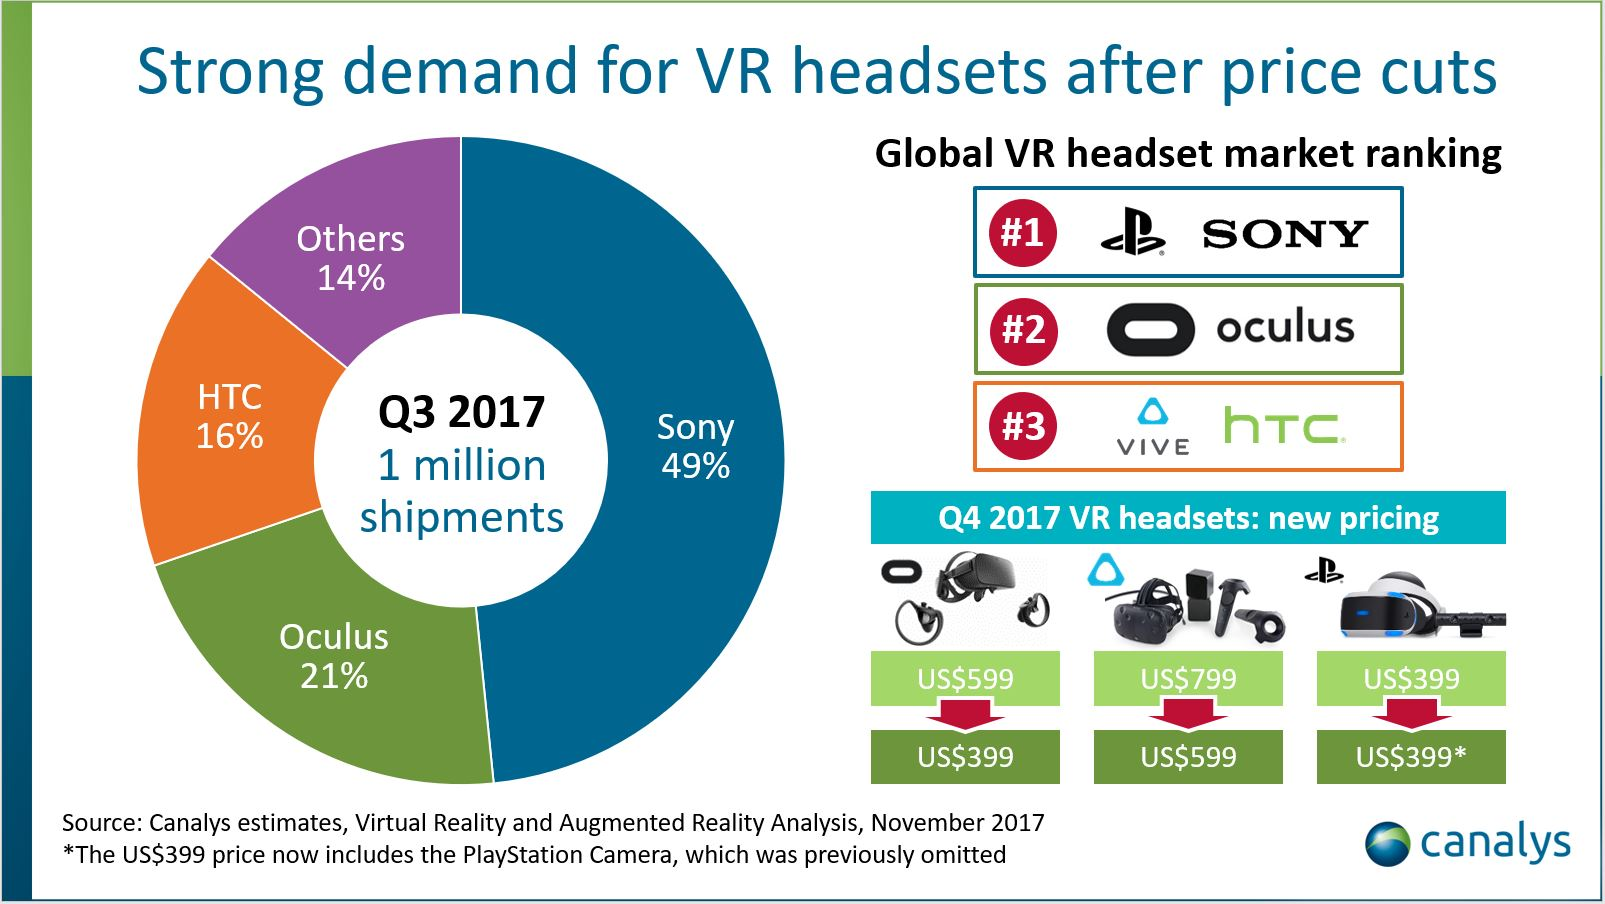 VR headset quarterly shipments hit one million units for the first time